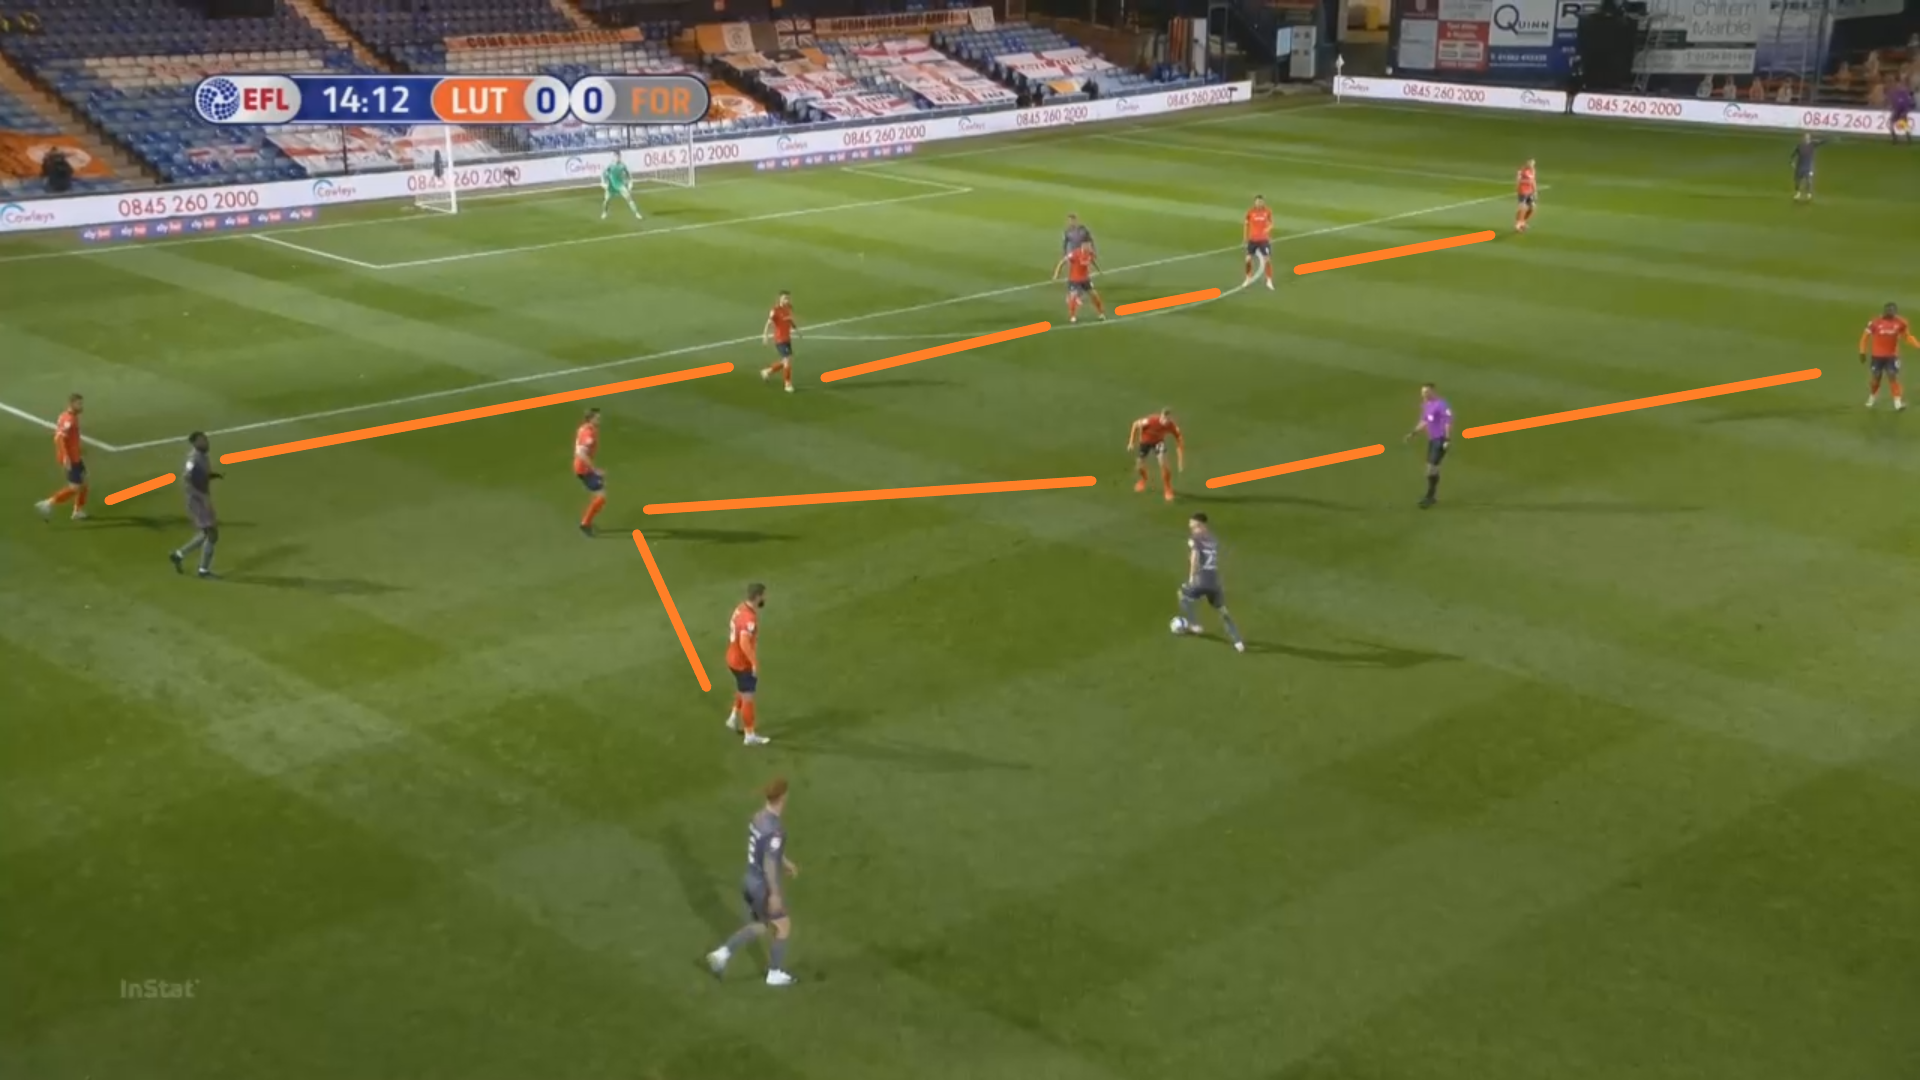 EFL Championship 2020/21: Luton Town vs Nottingham Forest - tactical analysis - tactics